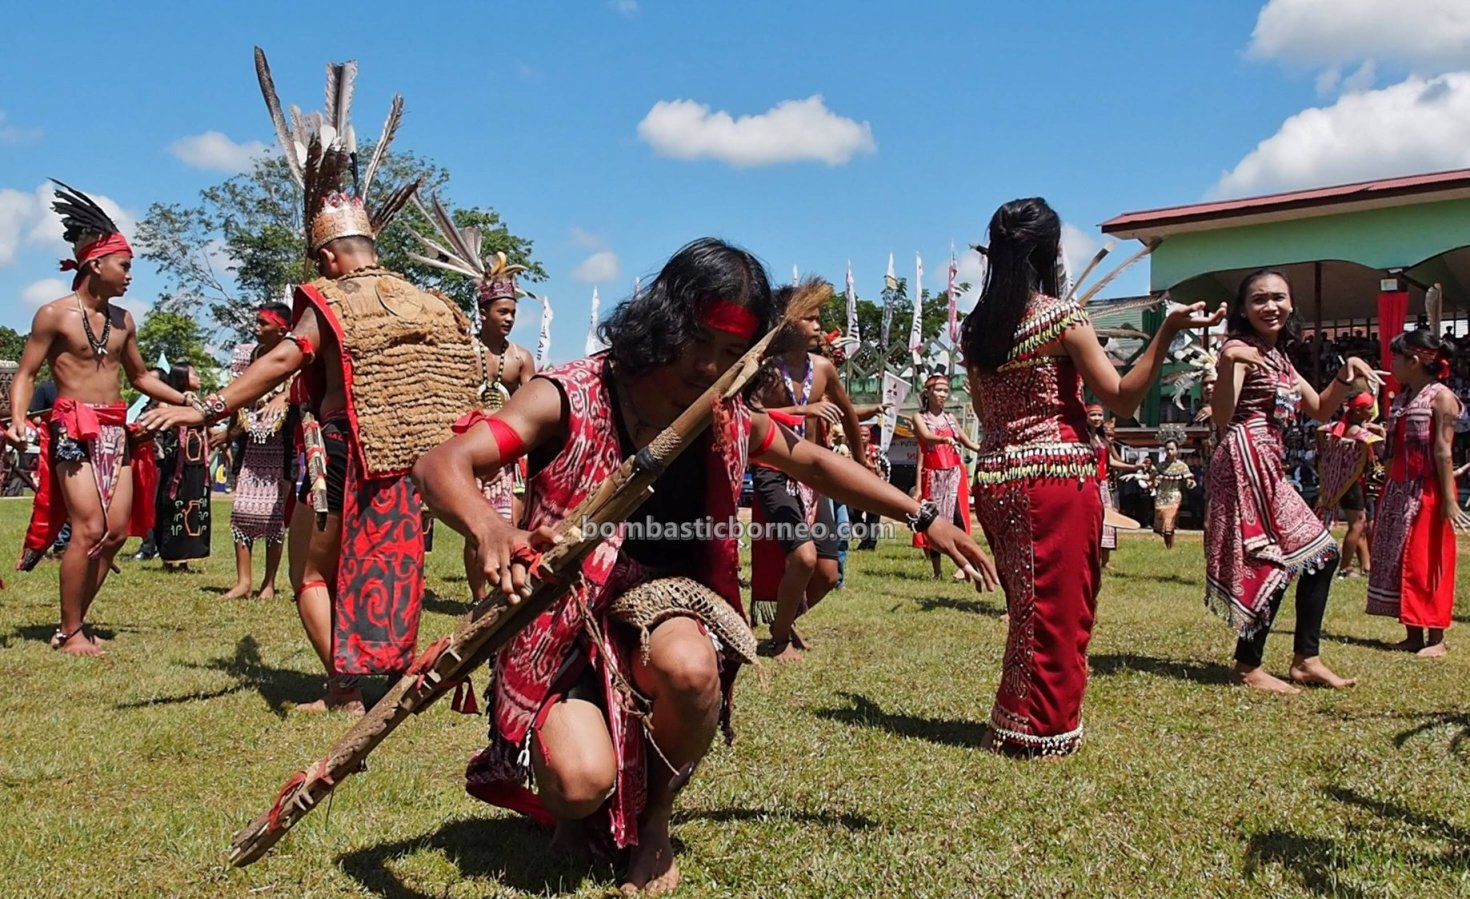 Kapuas Hulu, Paddy harvest festival, traditional, Indonesia, destination, indigenous, native, tribe, Obyek wisata, Tourism, Borneo, Cross Border, 跨境婆罗洲游踪, 印尼甘布安斯乌鲁, 富都原住民丰收节